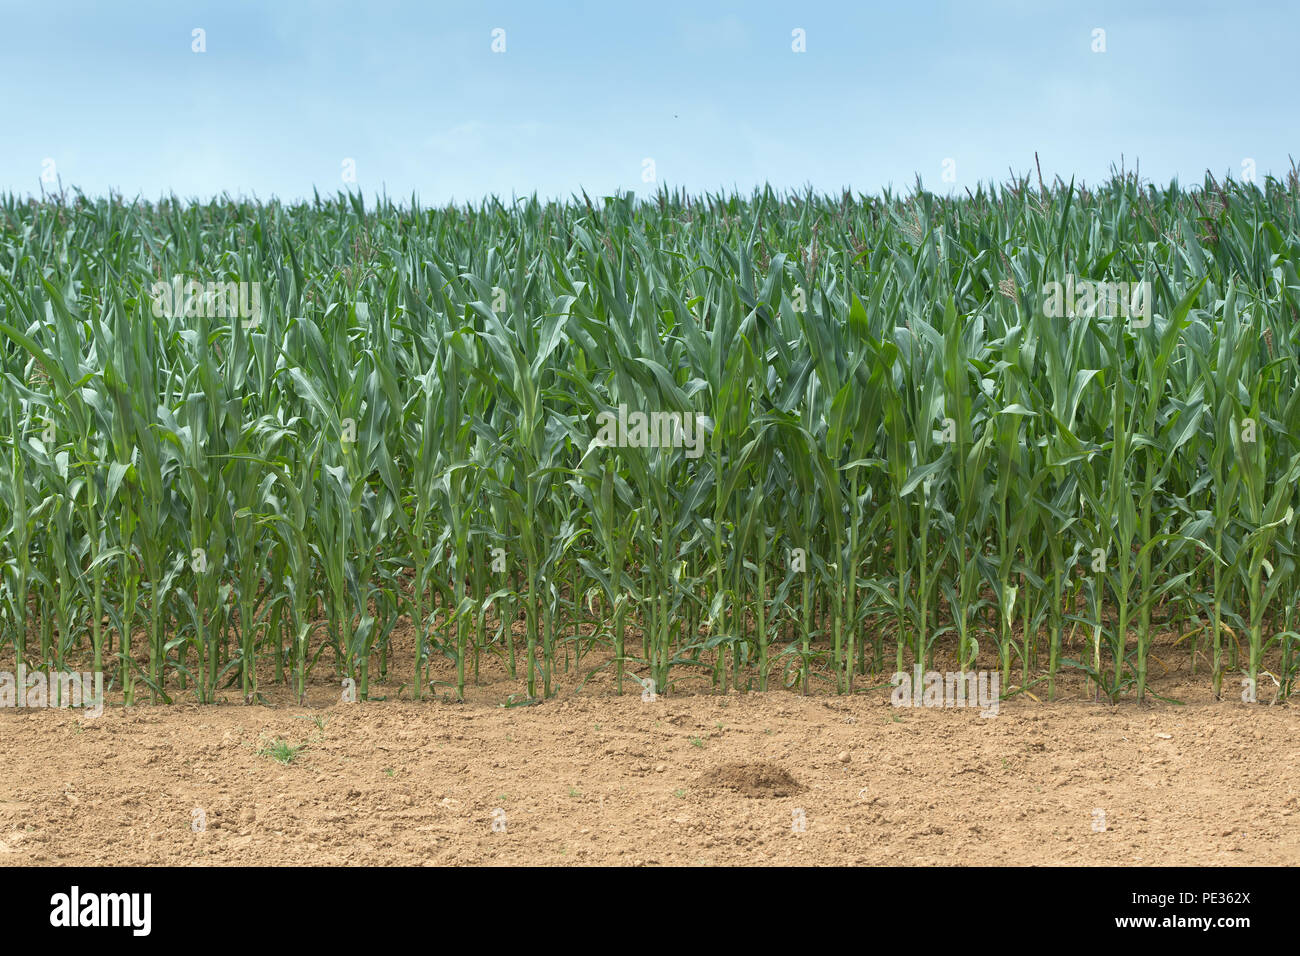 Maize crop growing well in a hot summer. Cotswolds, UK. - Stock Image